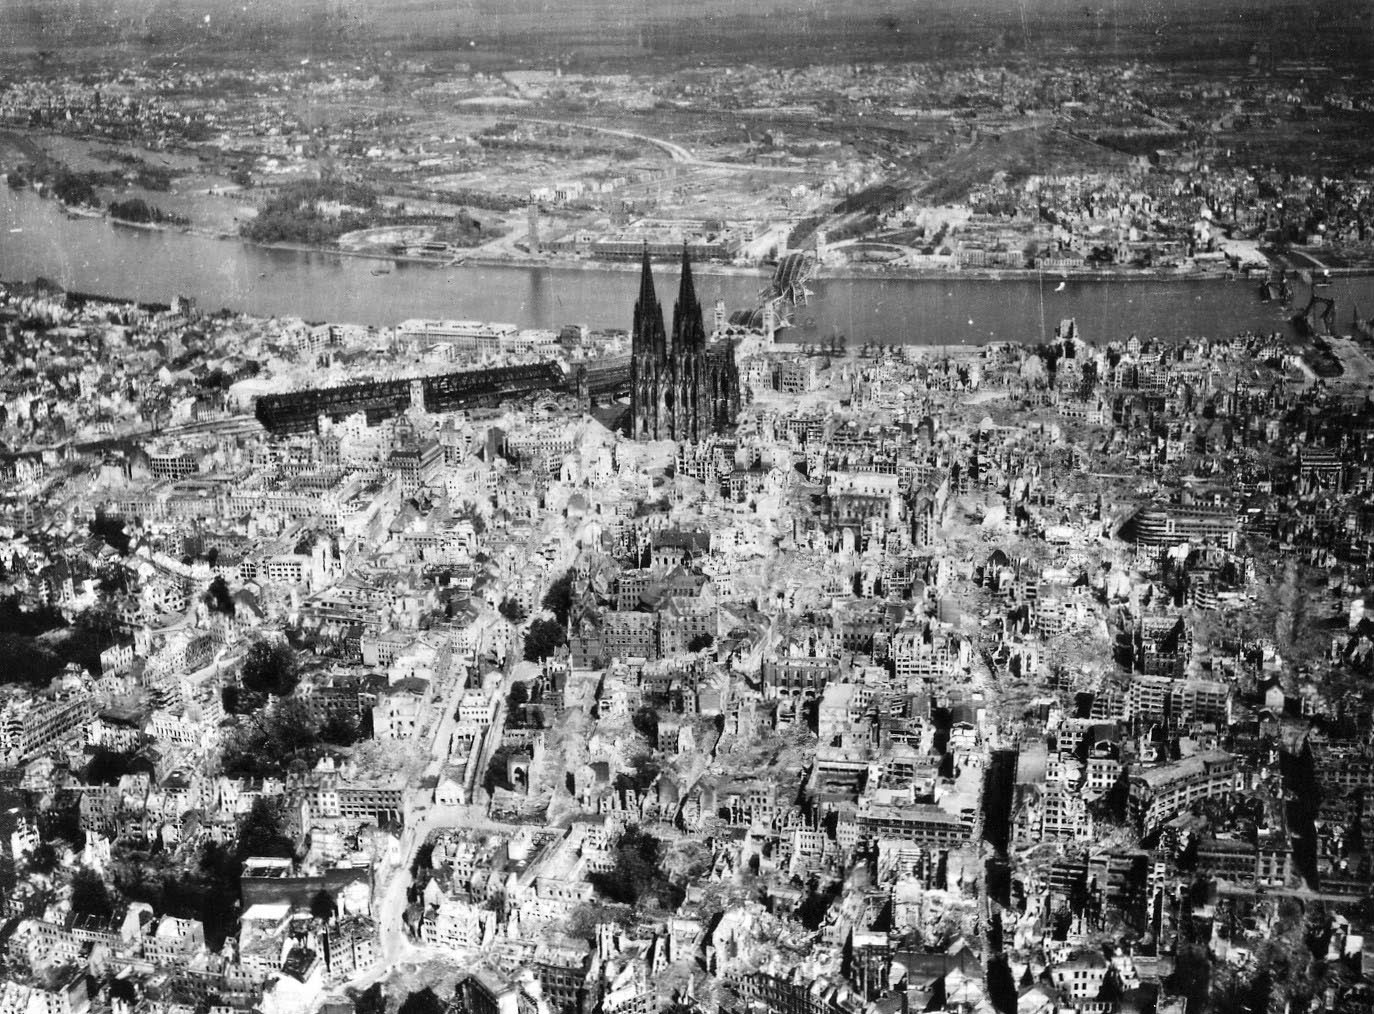 The cologne cathedral stands tall amidst the ruins of the for Koln ww2